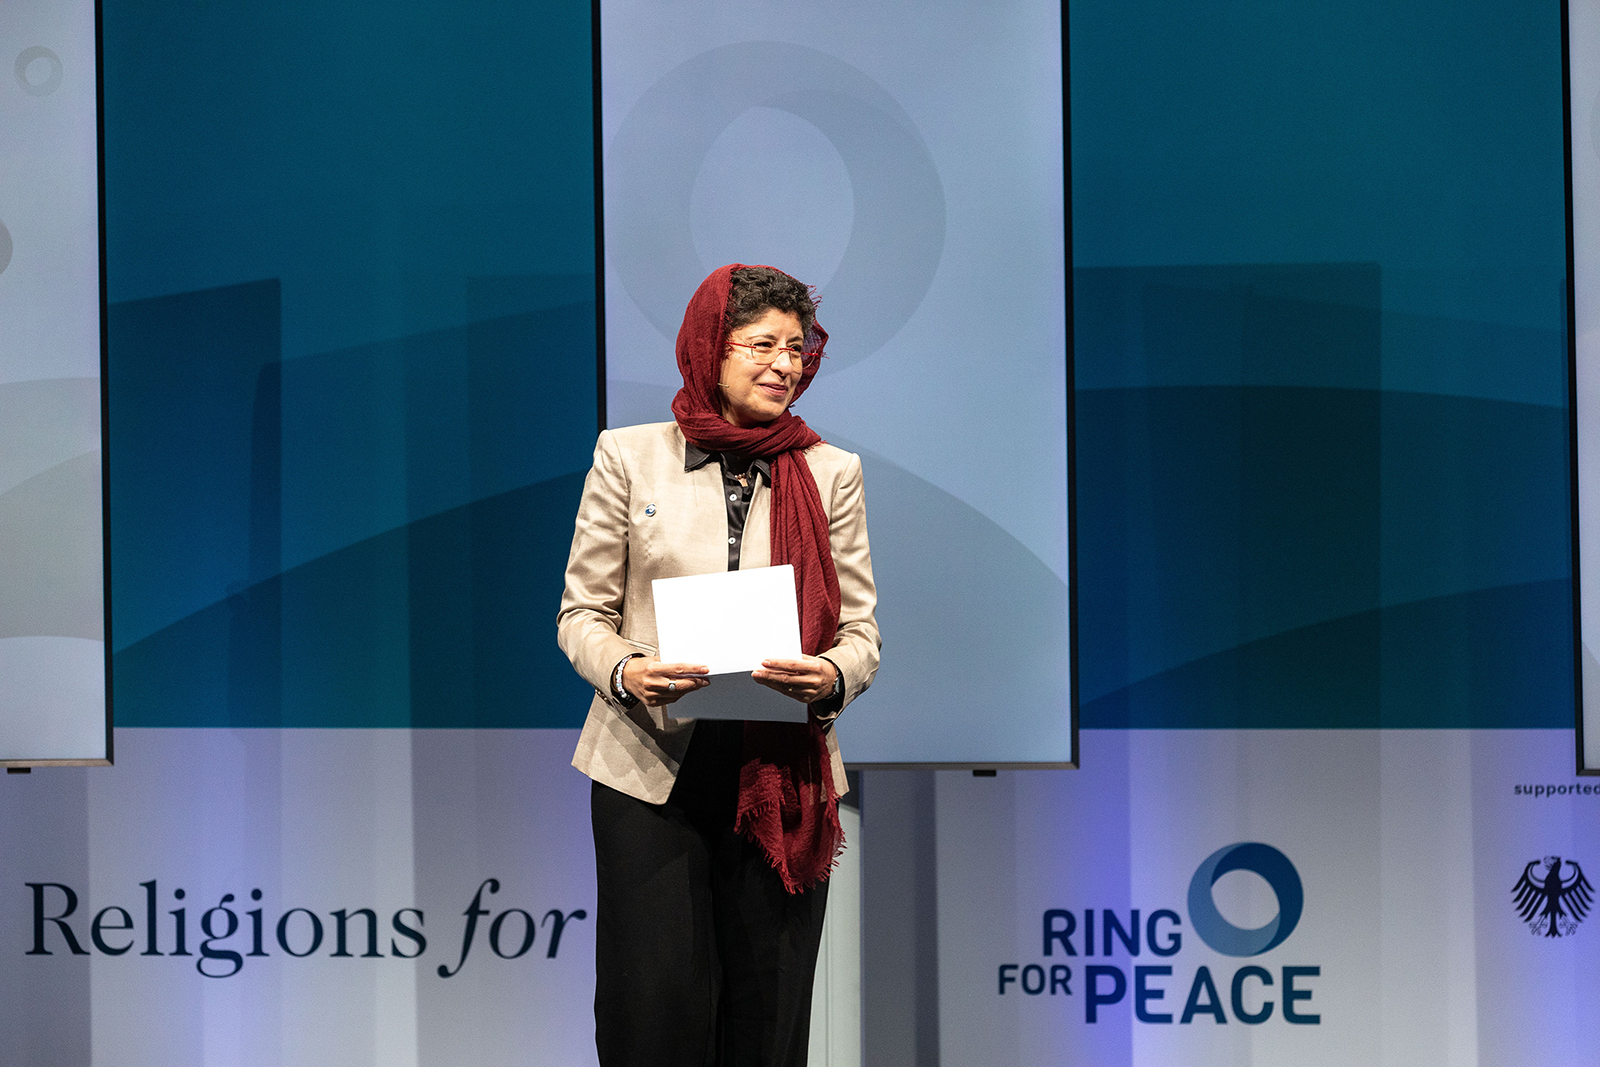 Religions for Peace Secretary-General Azza Karam speaks during the opening ceremony of the Religions for Peace Conference of the World Council of Religious Leaders on Faith and Diplomacy, Monday, Oct. 4, 2021, in Lindau, Germany. Photo courtesy of Religions for Peace